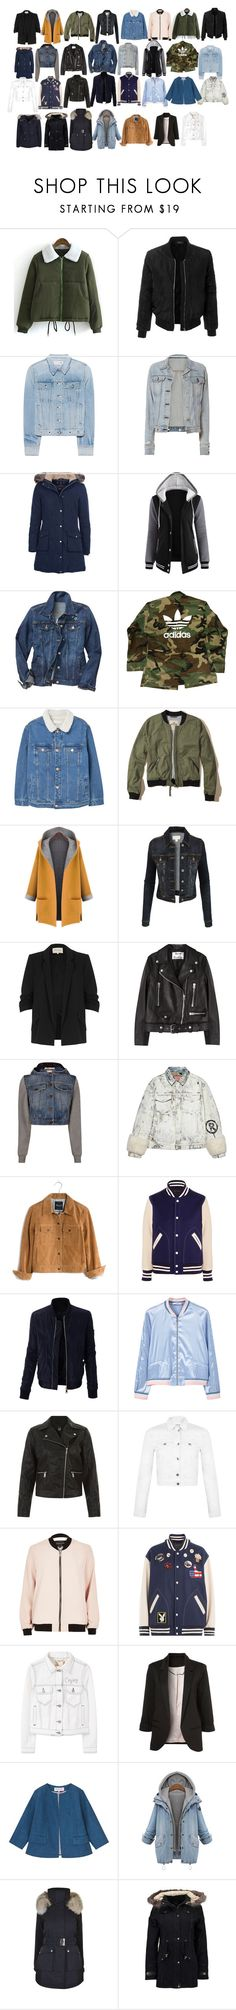 """""""1 of those weaks"""" by lilymadoxx on Polyvore featuring LE3NO, rag & bone, Barbour, Gap, adidas, MANGO, Hollister Co., WithChic, River Island and Acne Studios"""